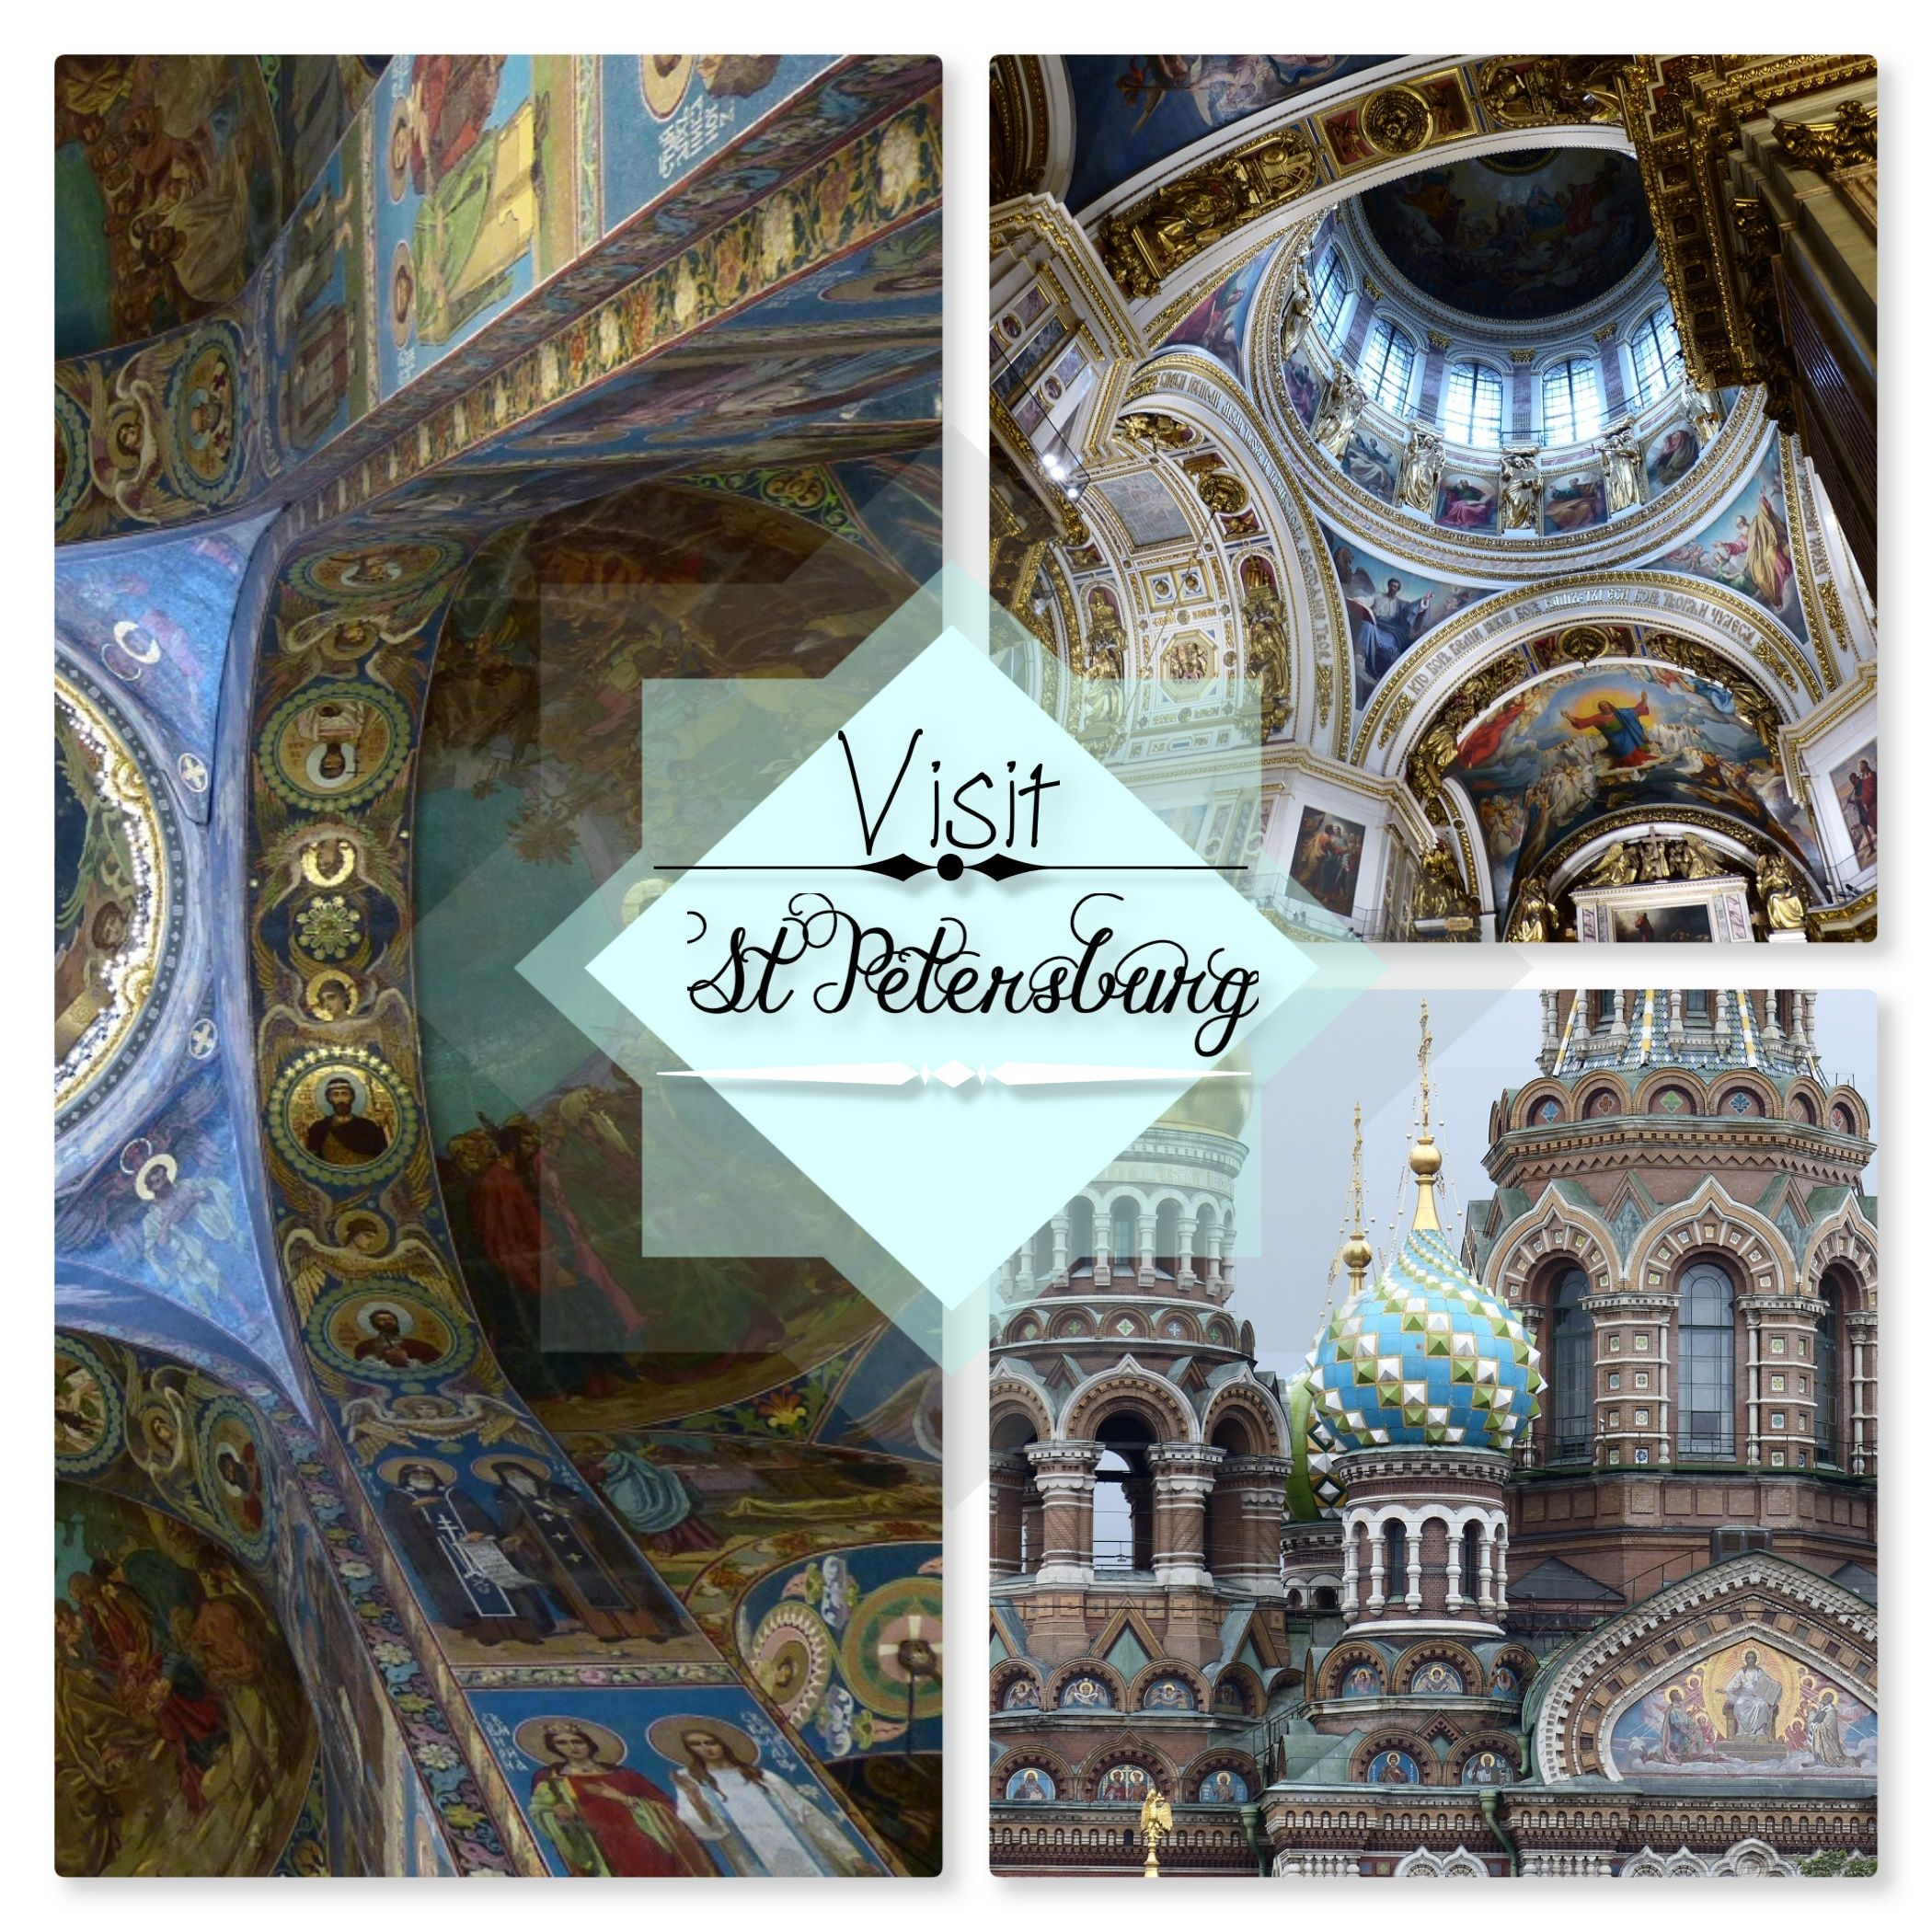 Don't miss anything on your trip to St Petersburg.